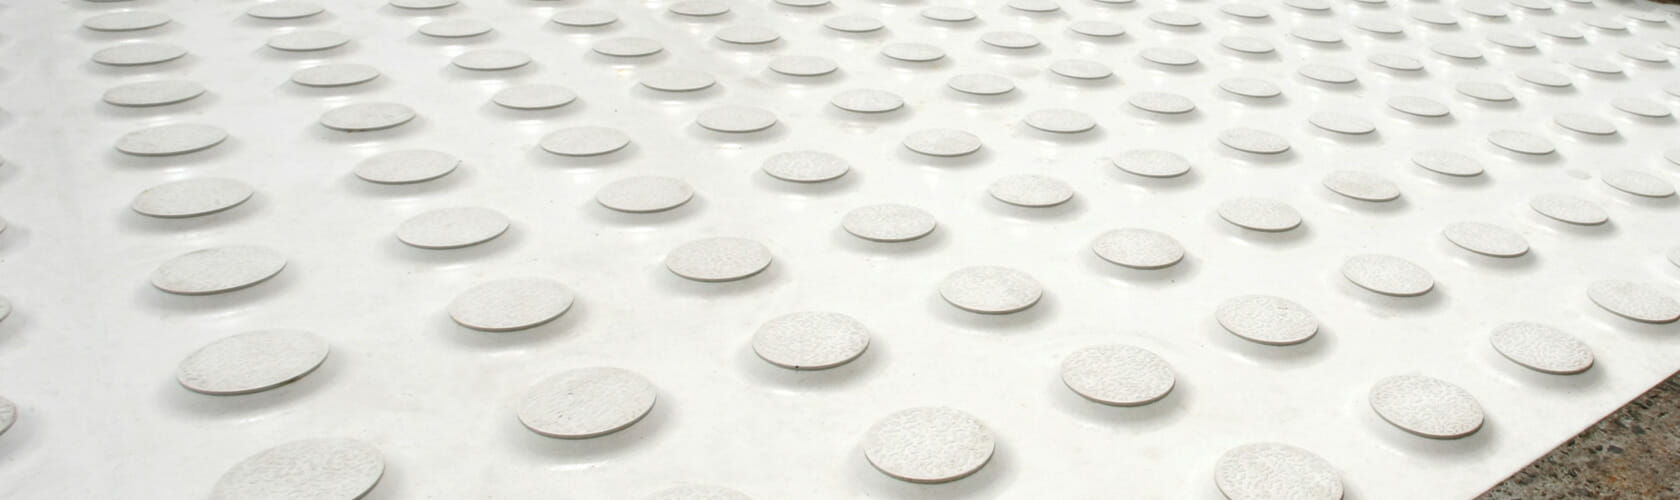 Image of GripGuard's Cobbletac Tactile Indicators available from www.gripACTion.com.au